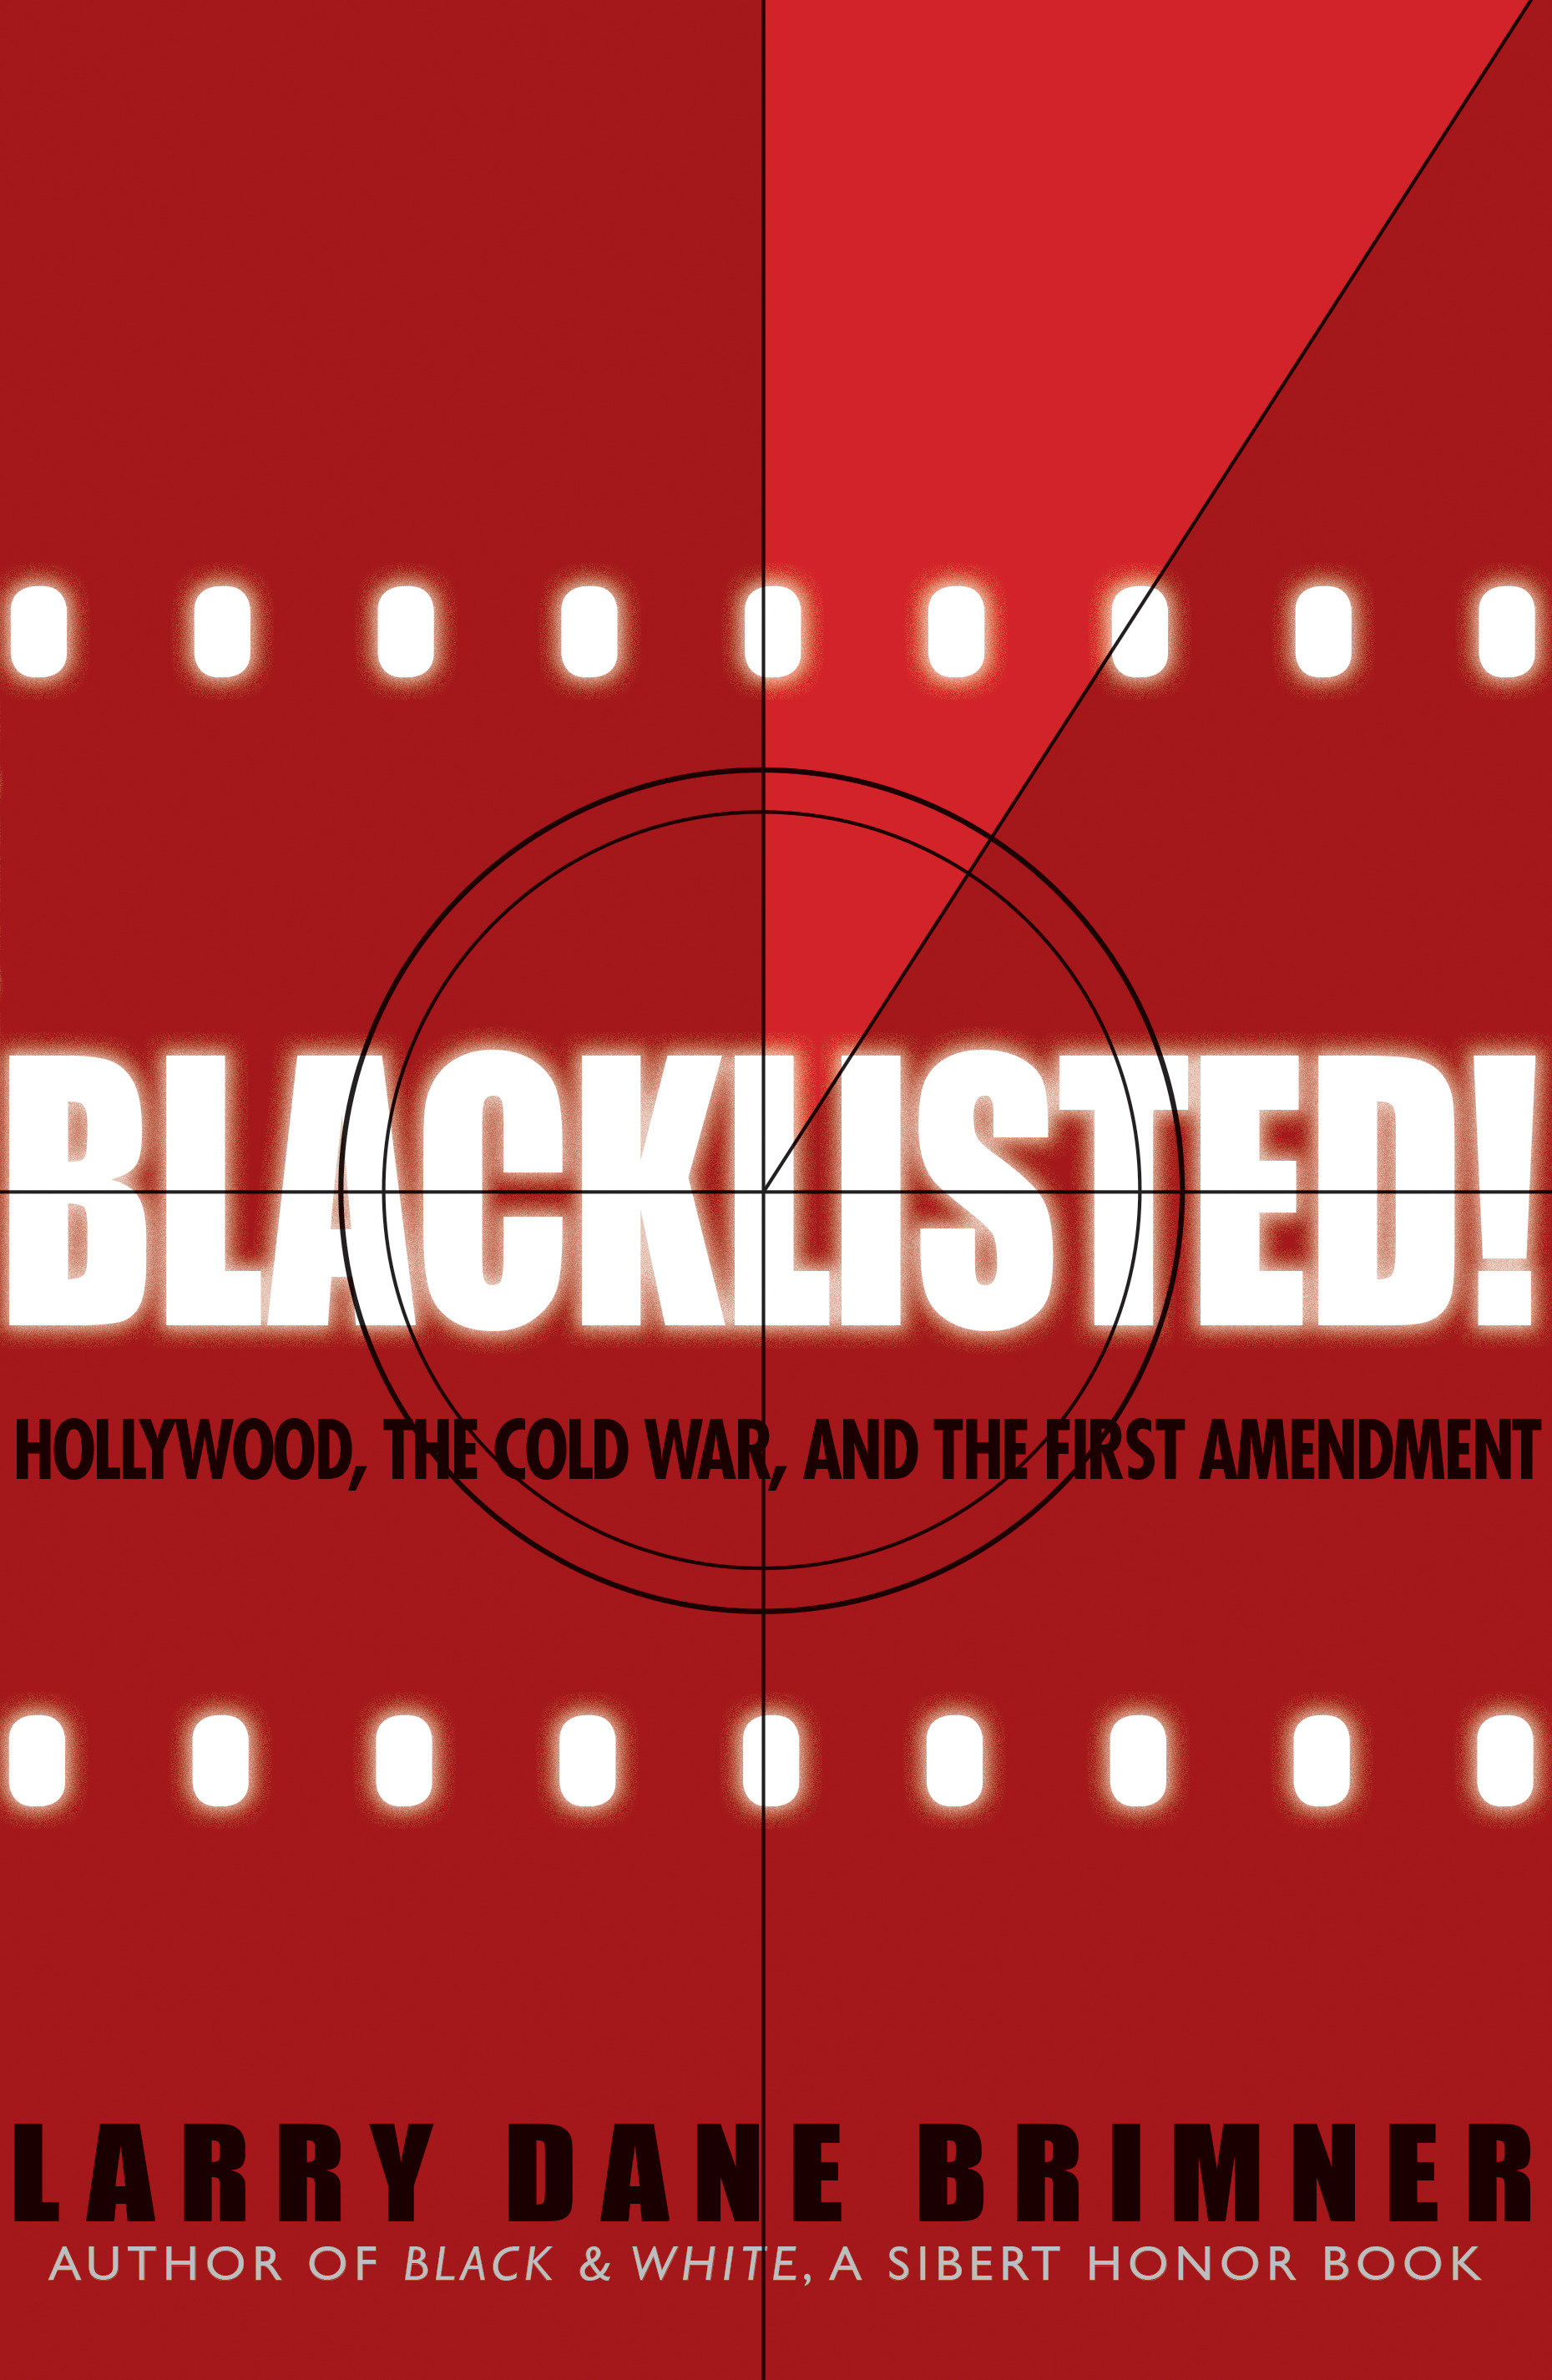 Blacklisted! Hollywood, the Cold War, and the First Amendment